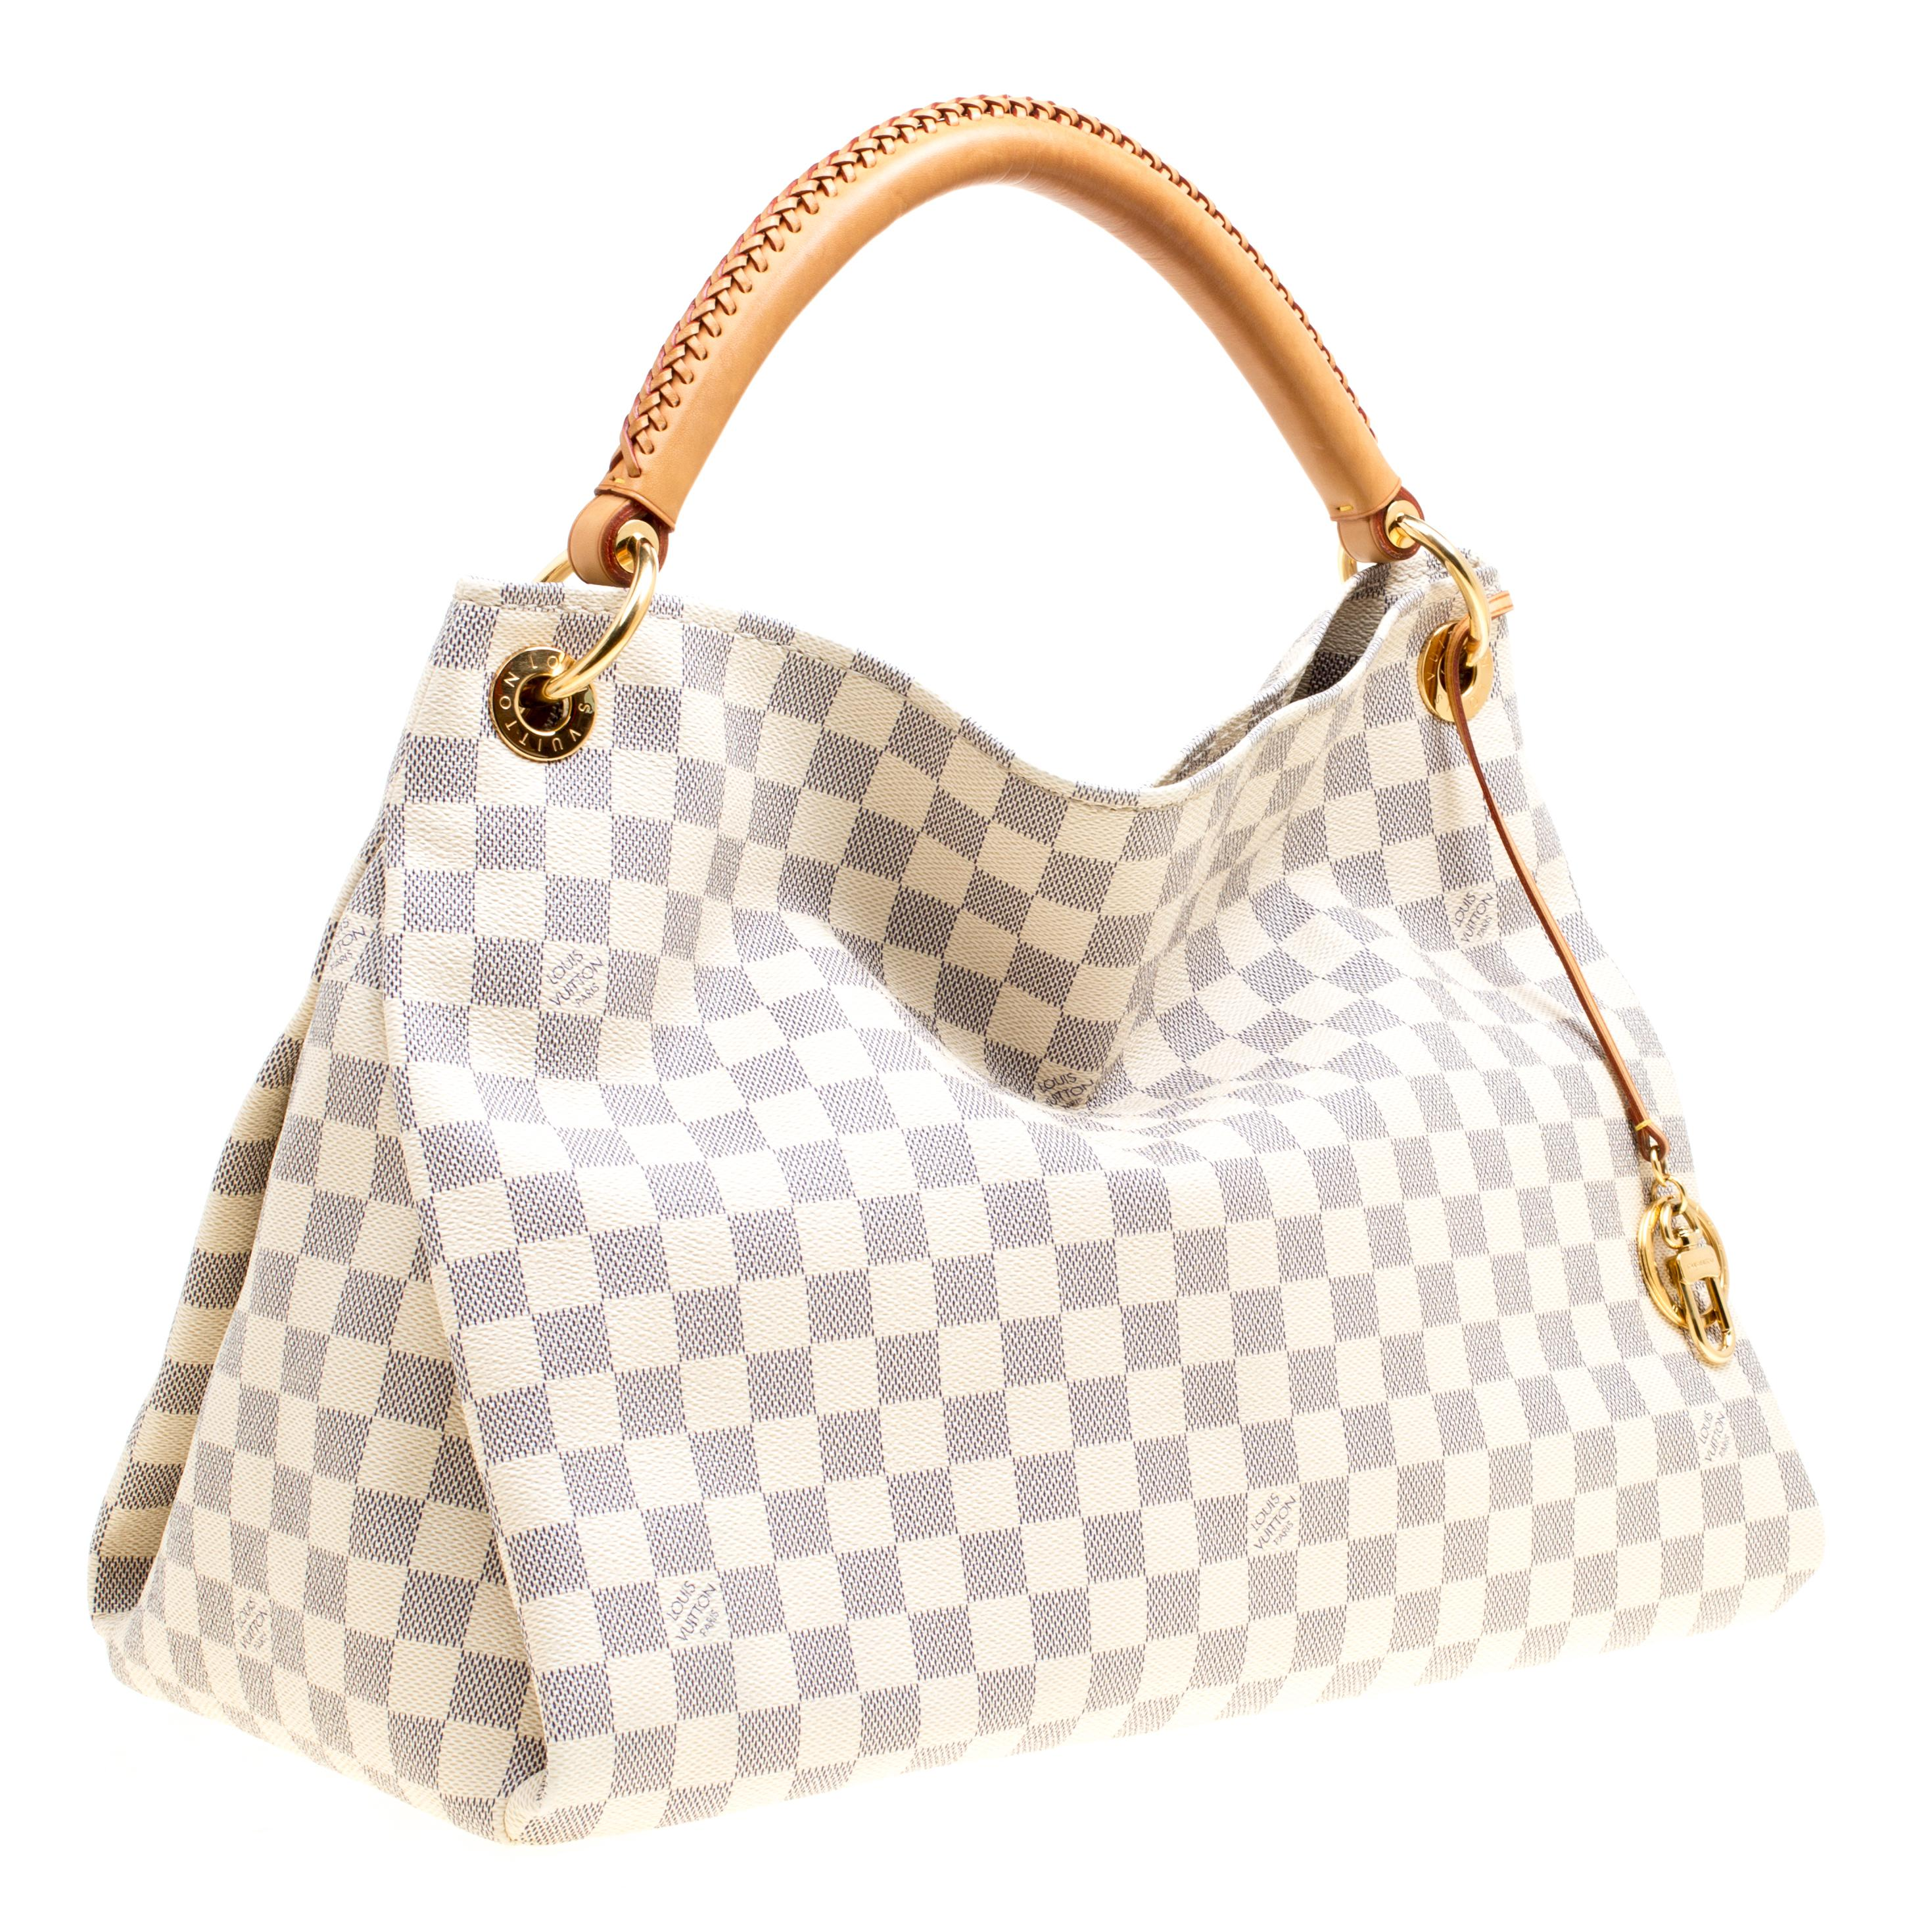 2fa13466bdd7 Lyst - Louis Vuitton Damier Azur Canvas Artsy Mm Bag in Gray